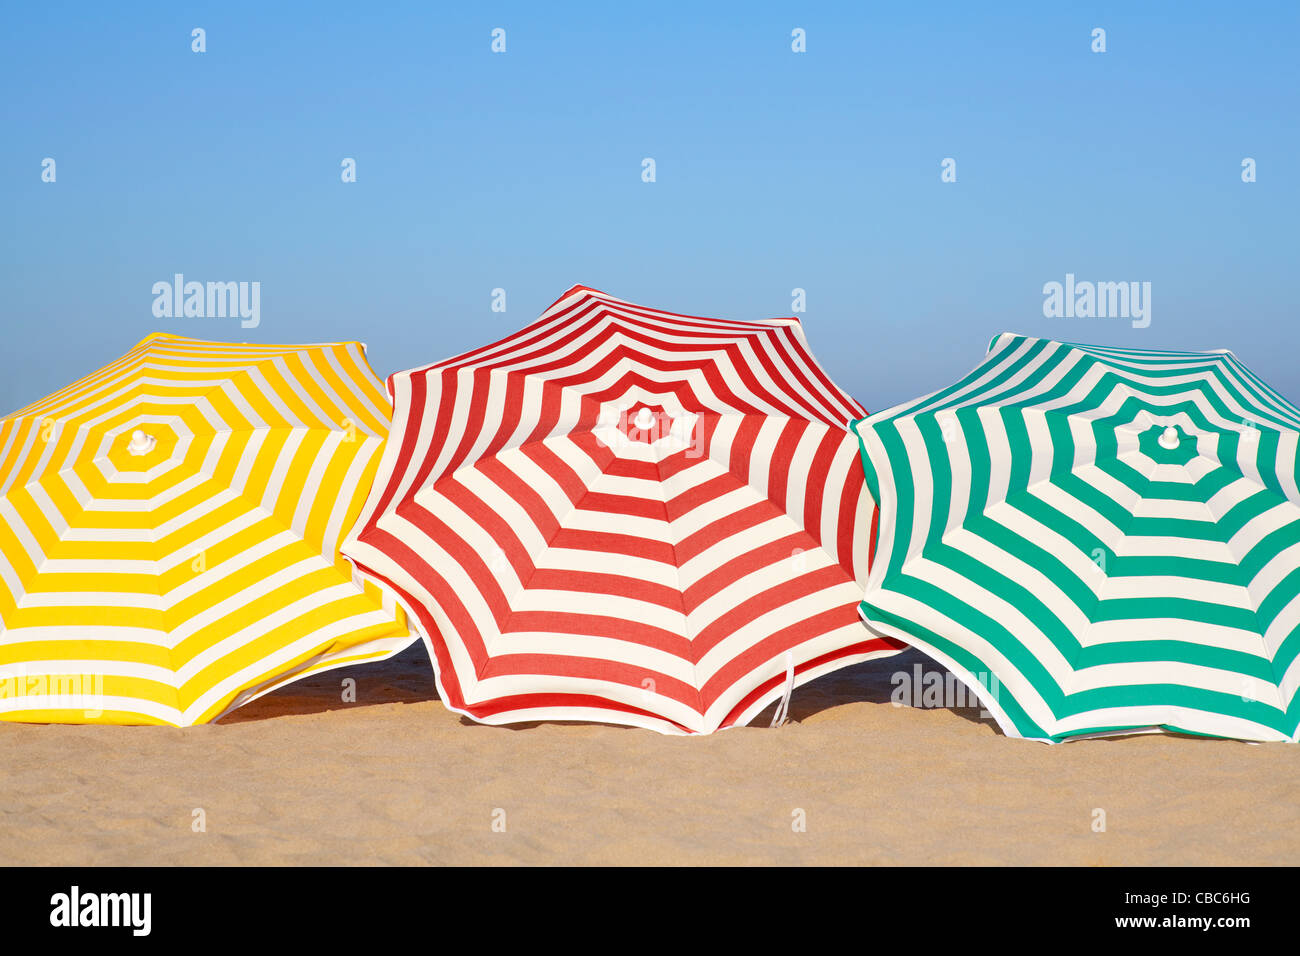 Colorful umbrellas on beach - Stock Image